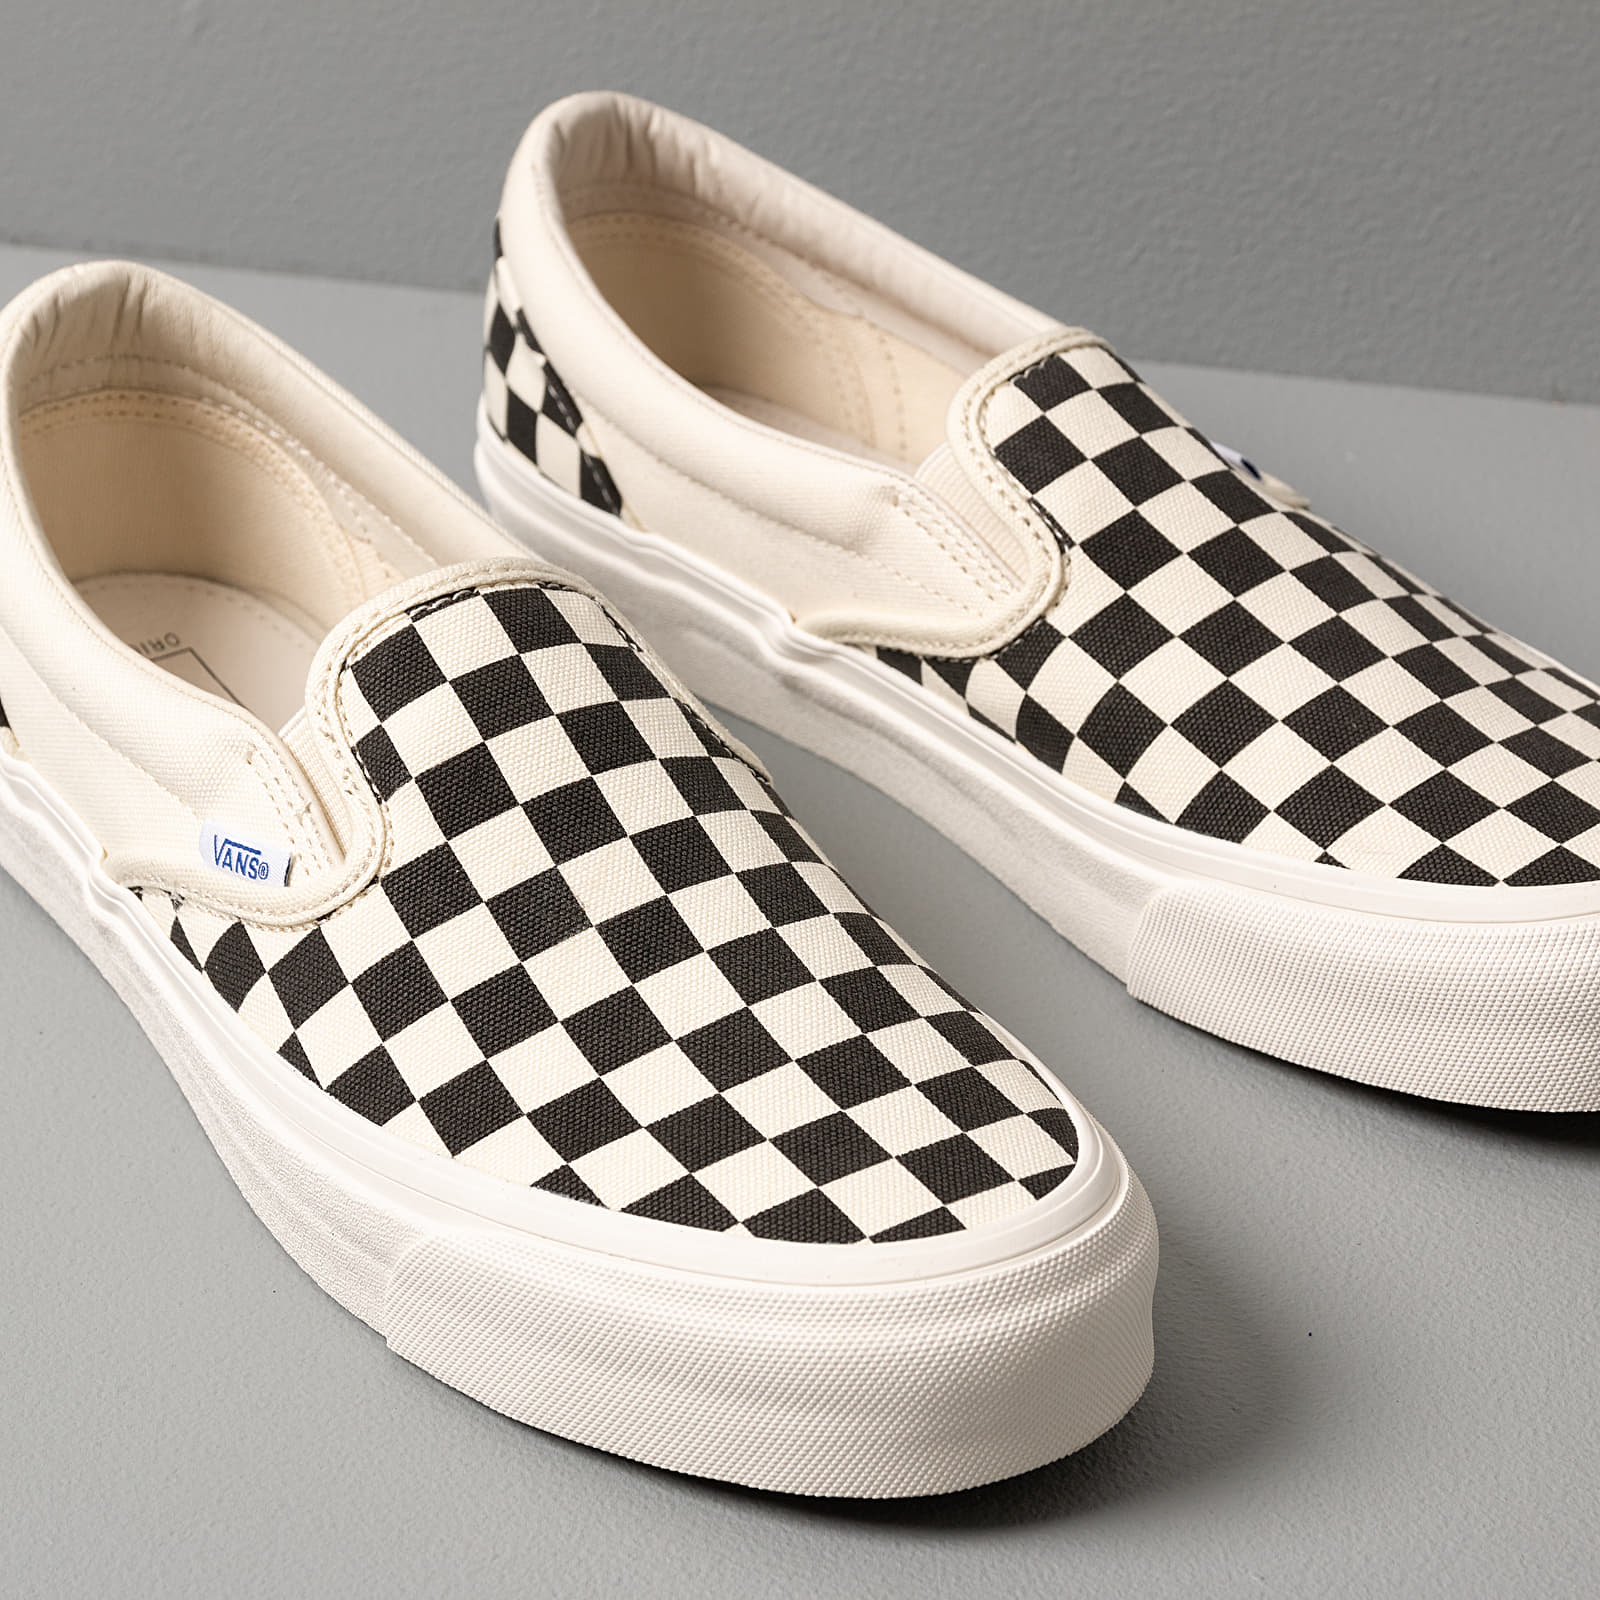 Vans OG Classic Slip On LX (Canvas)Black White Checkerboard